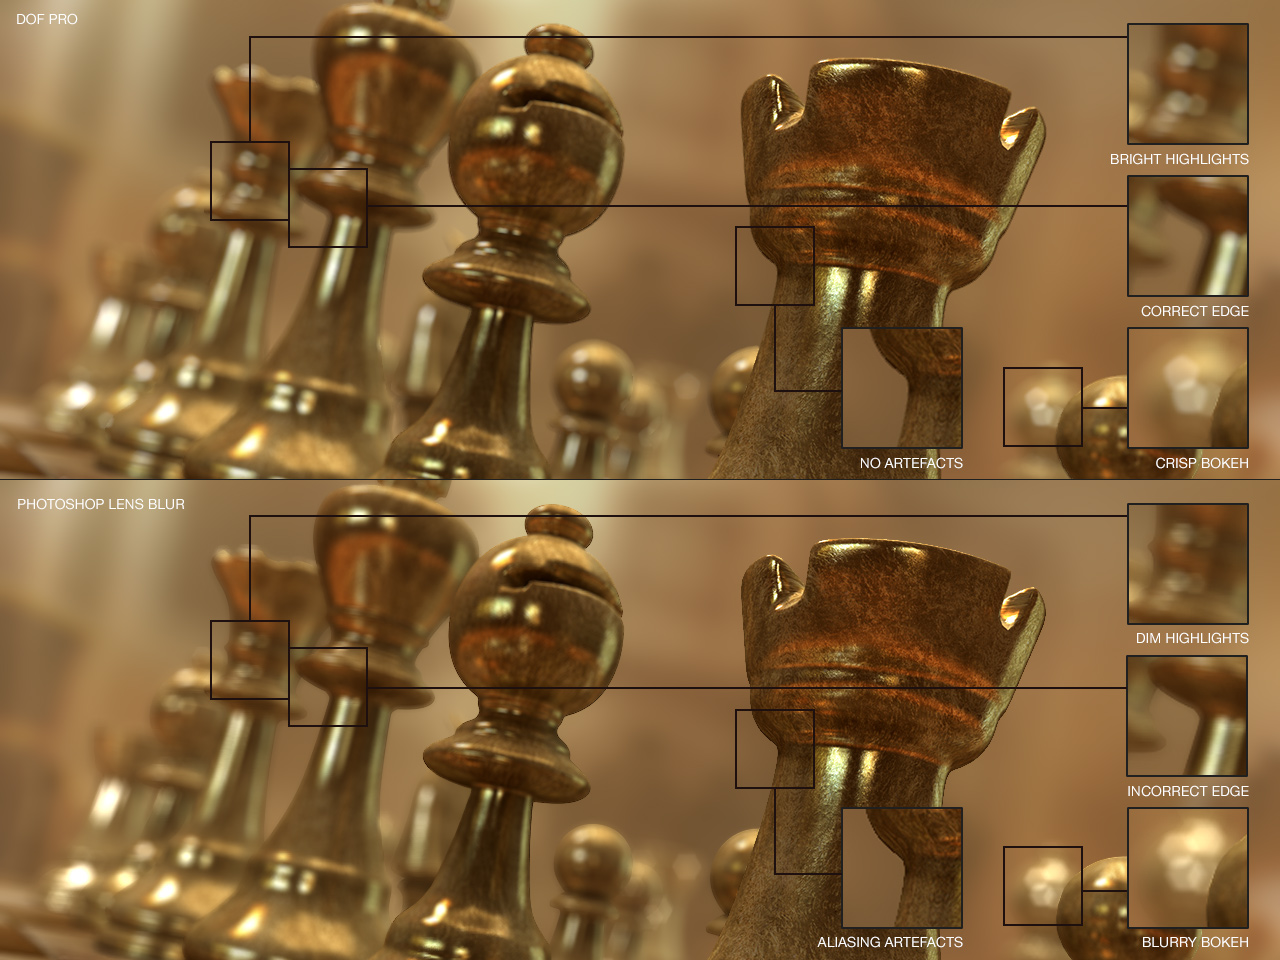 DOF PRO vs Photoshop Lens Blur